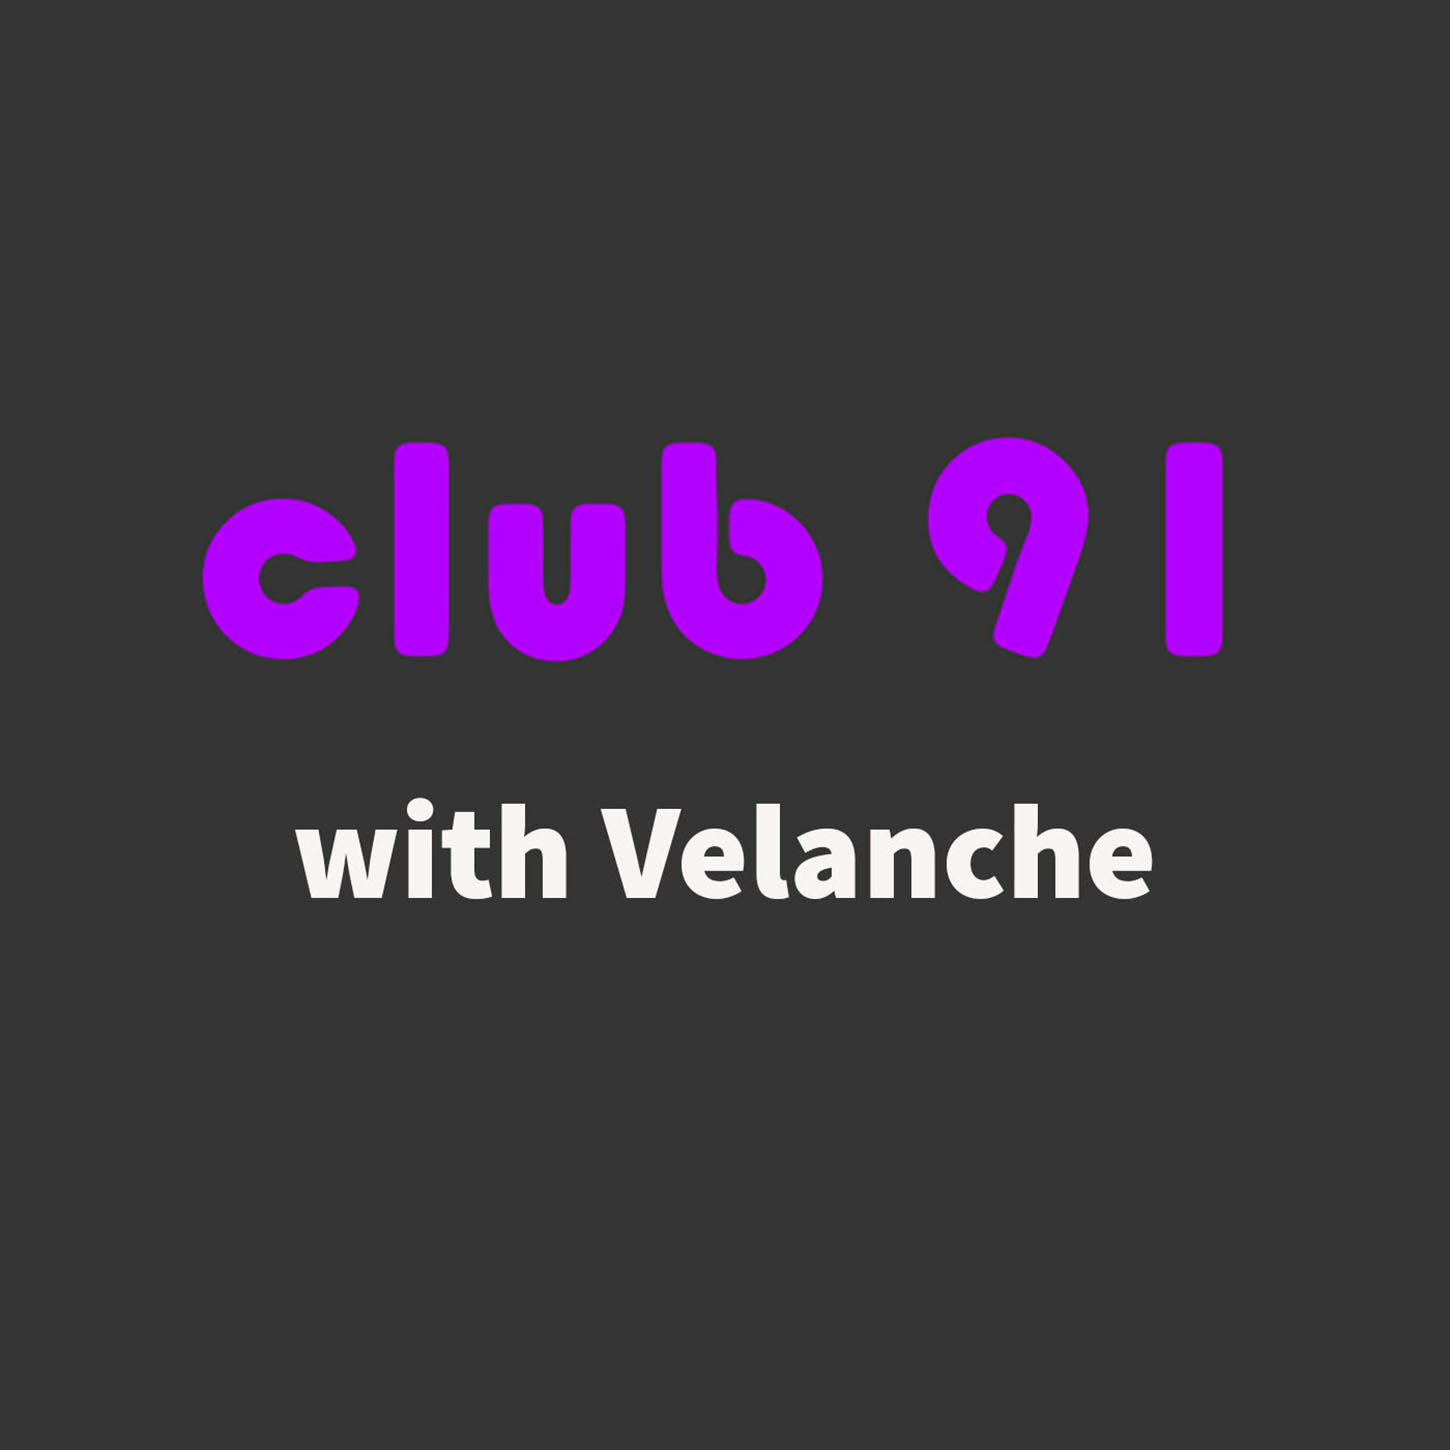 Club 91 with Velanche